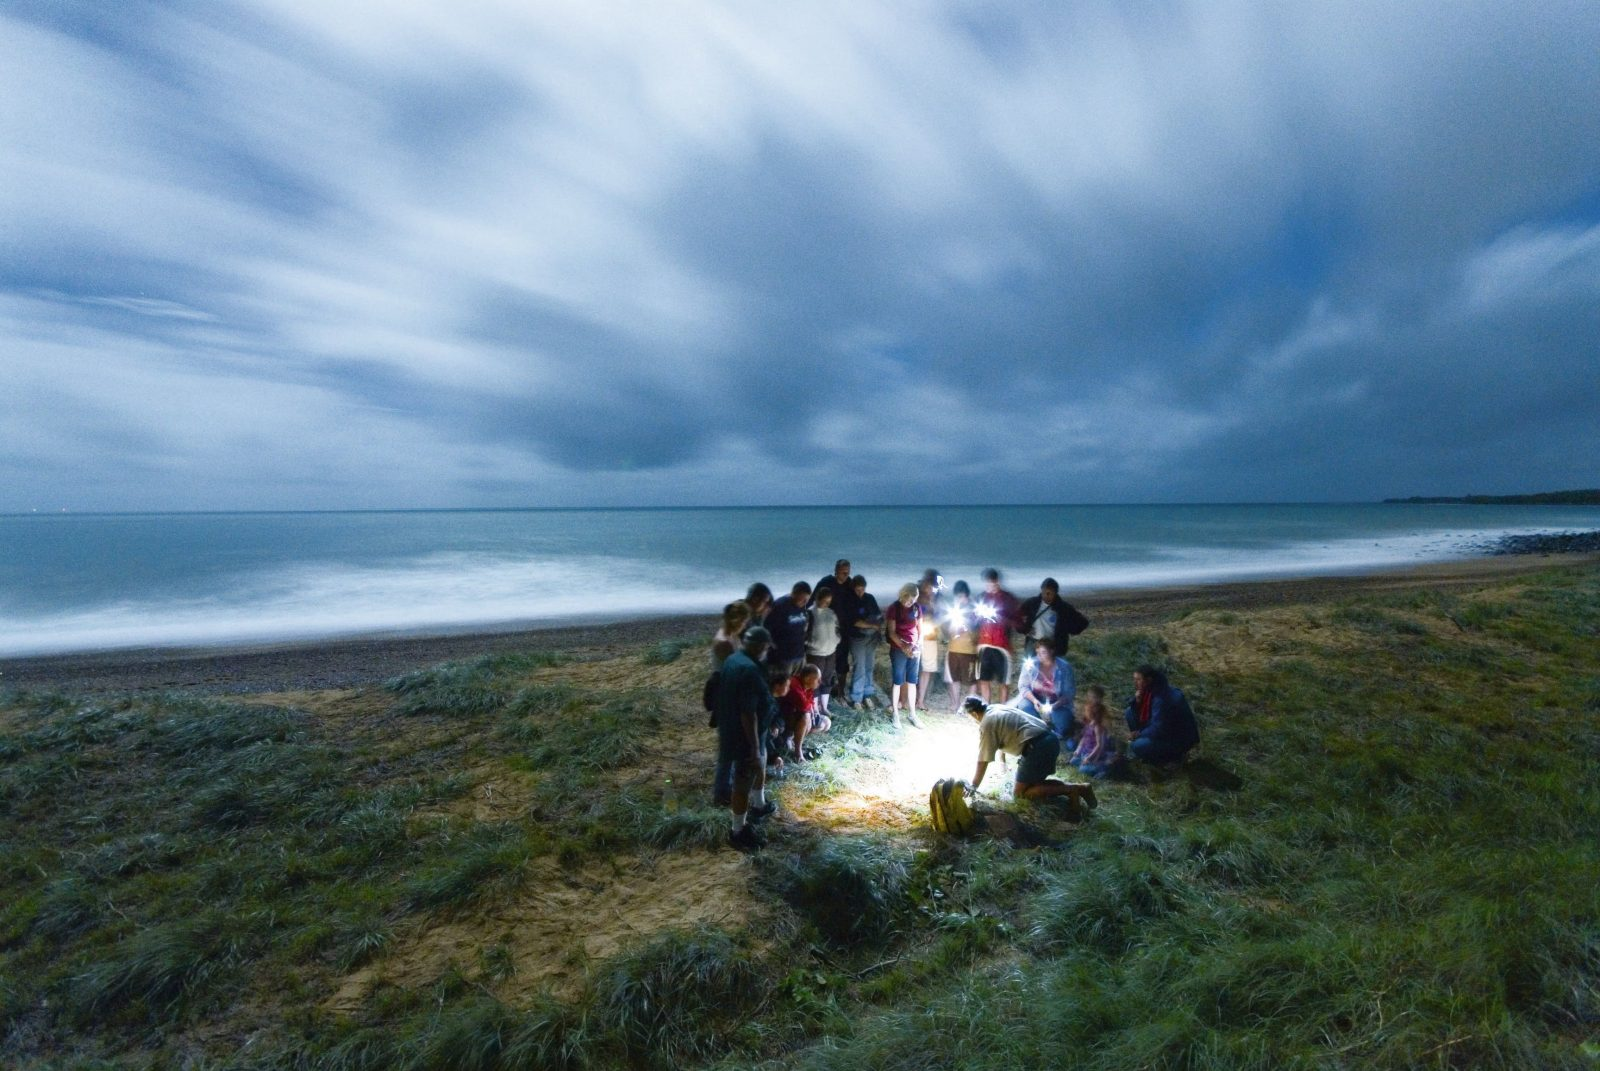 A group of people standing around a sandpit with a turtle, illuminated by torchlight.